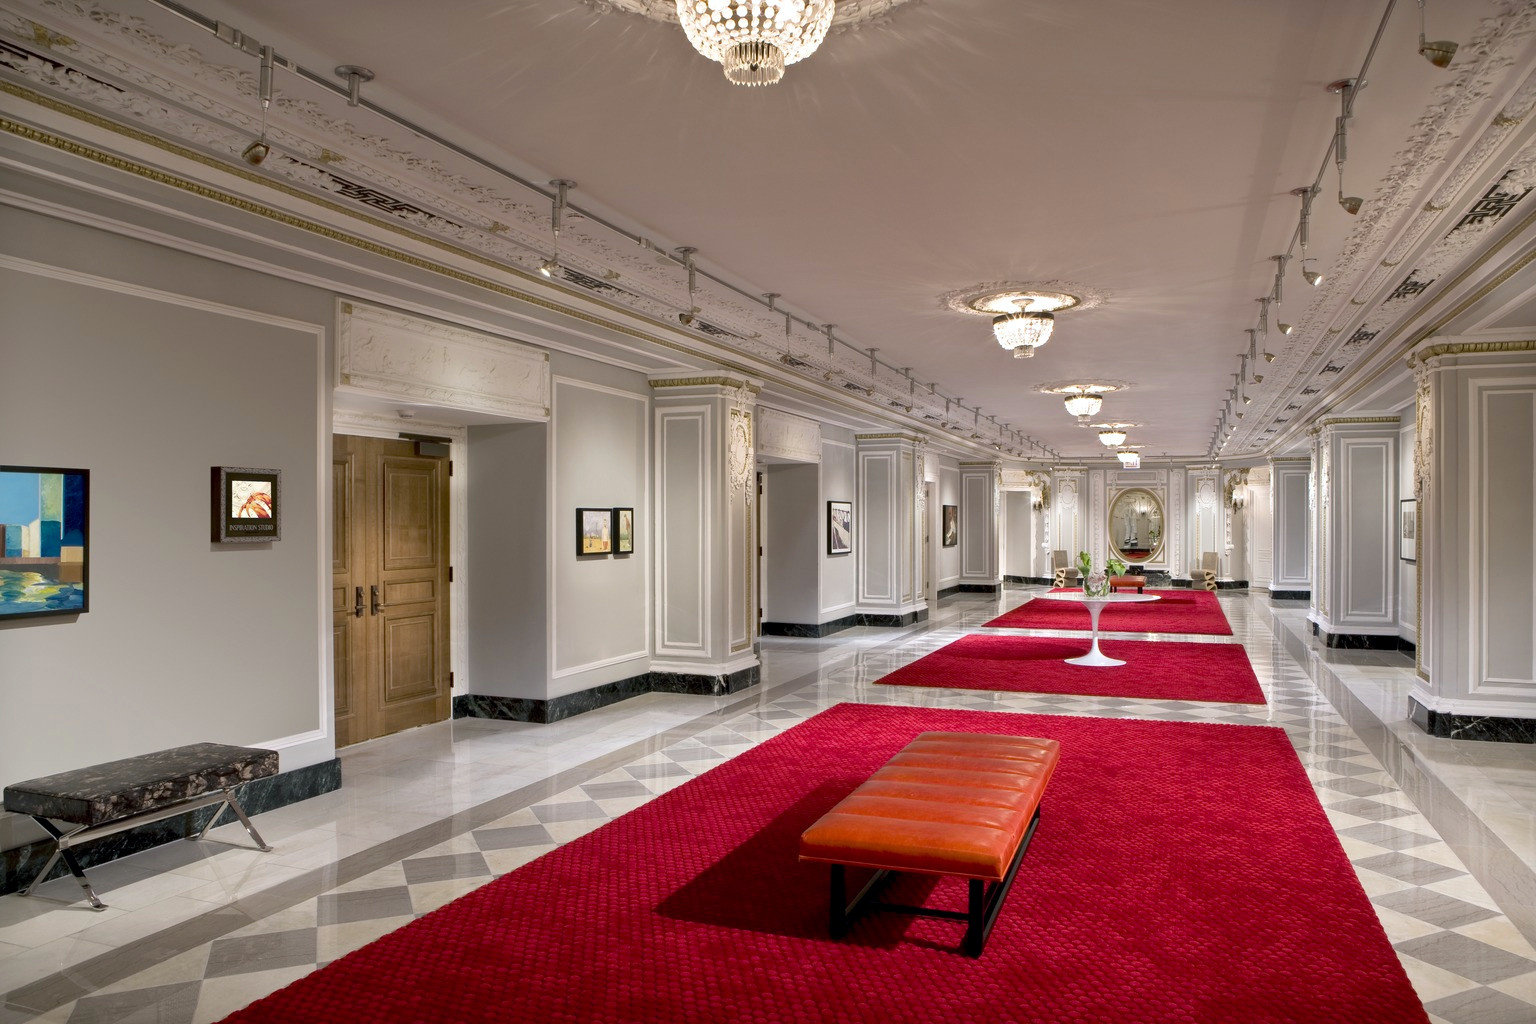 Lounge Luxury property red Lobby flooring function hall living room conference hall mansion ballroom recreation room hall